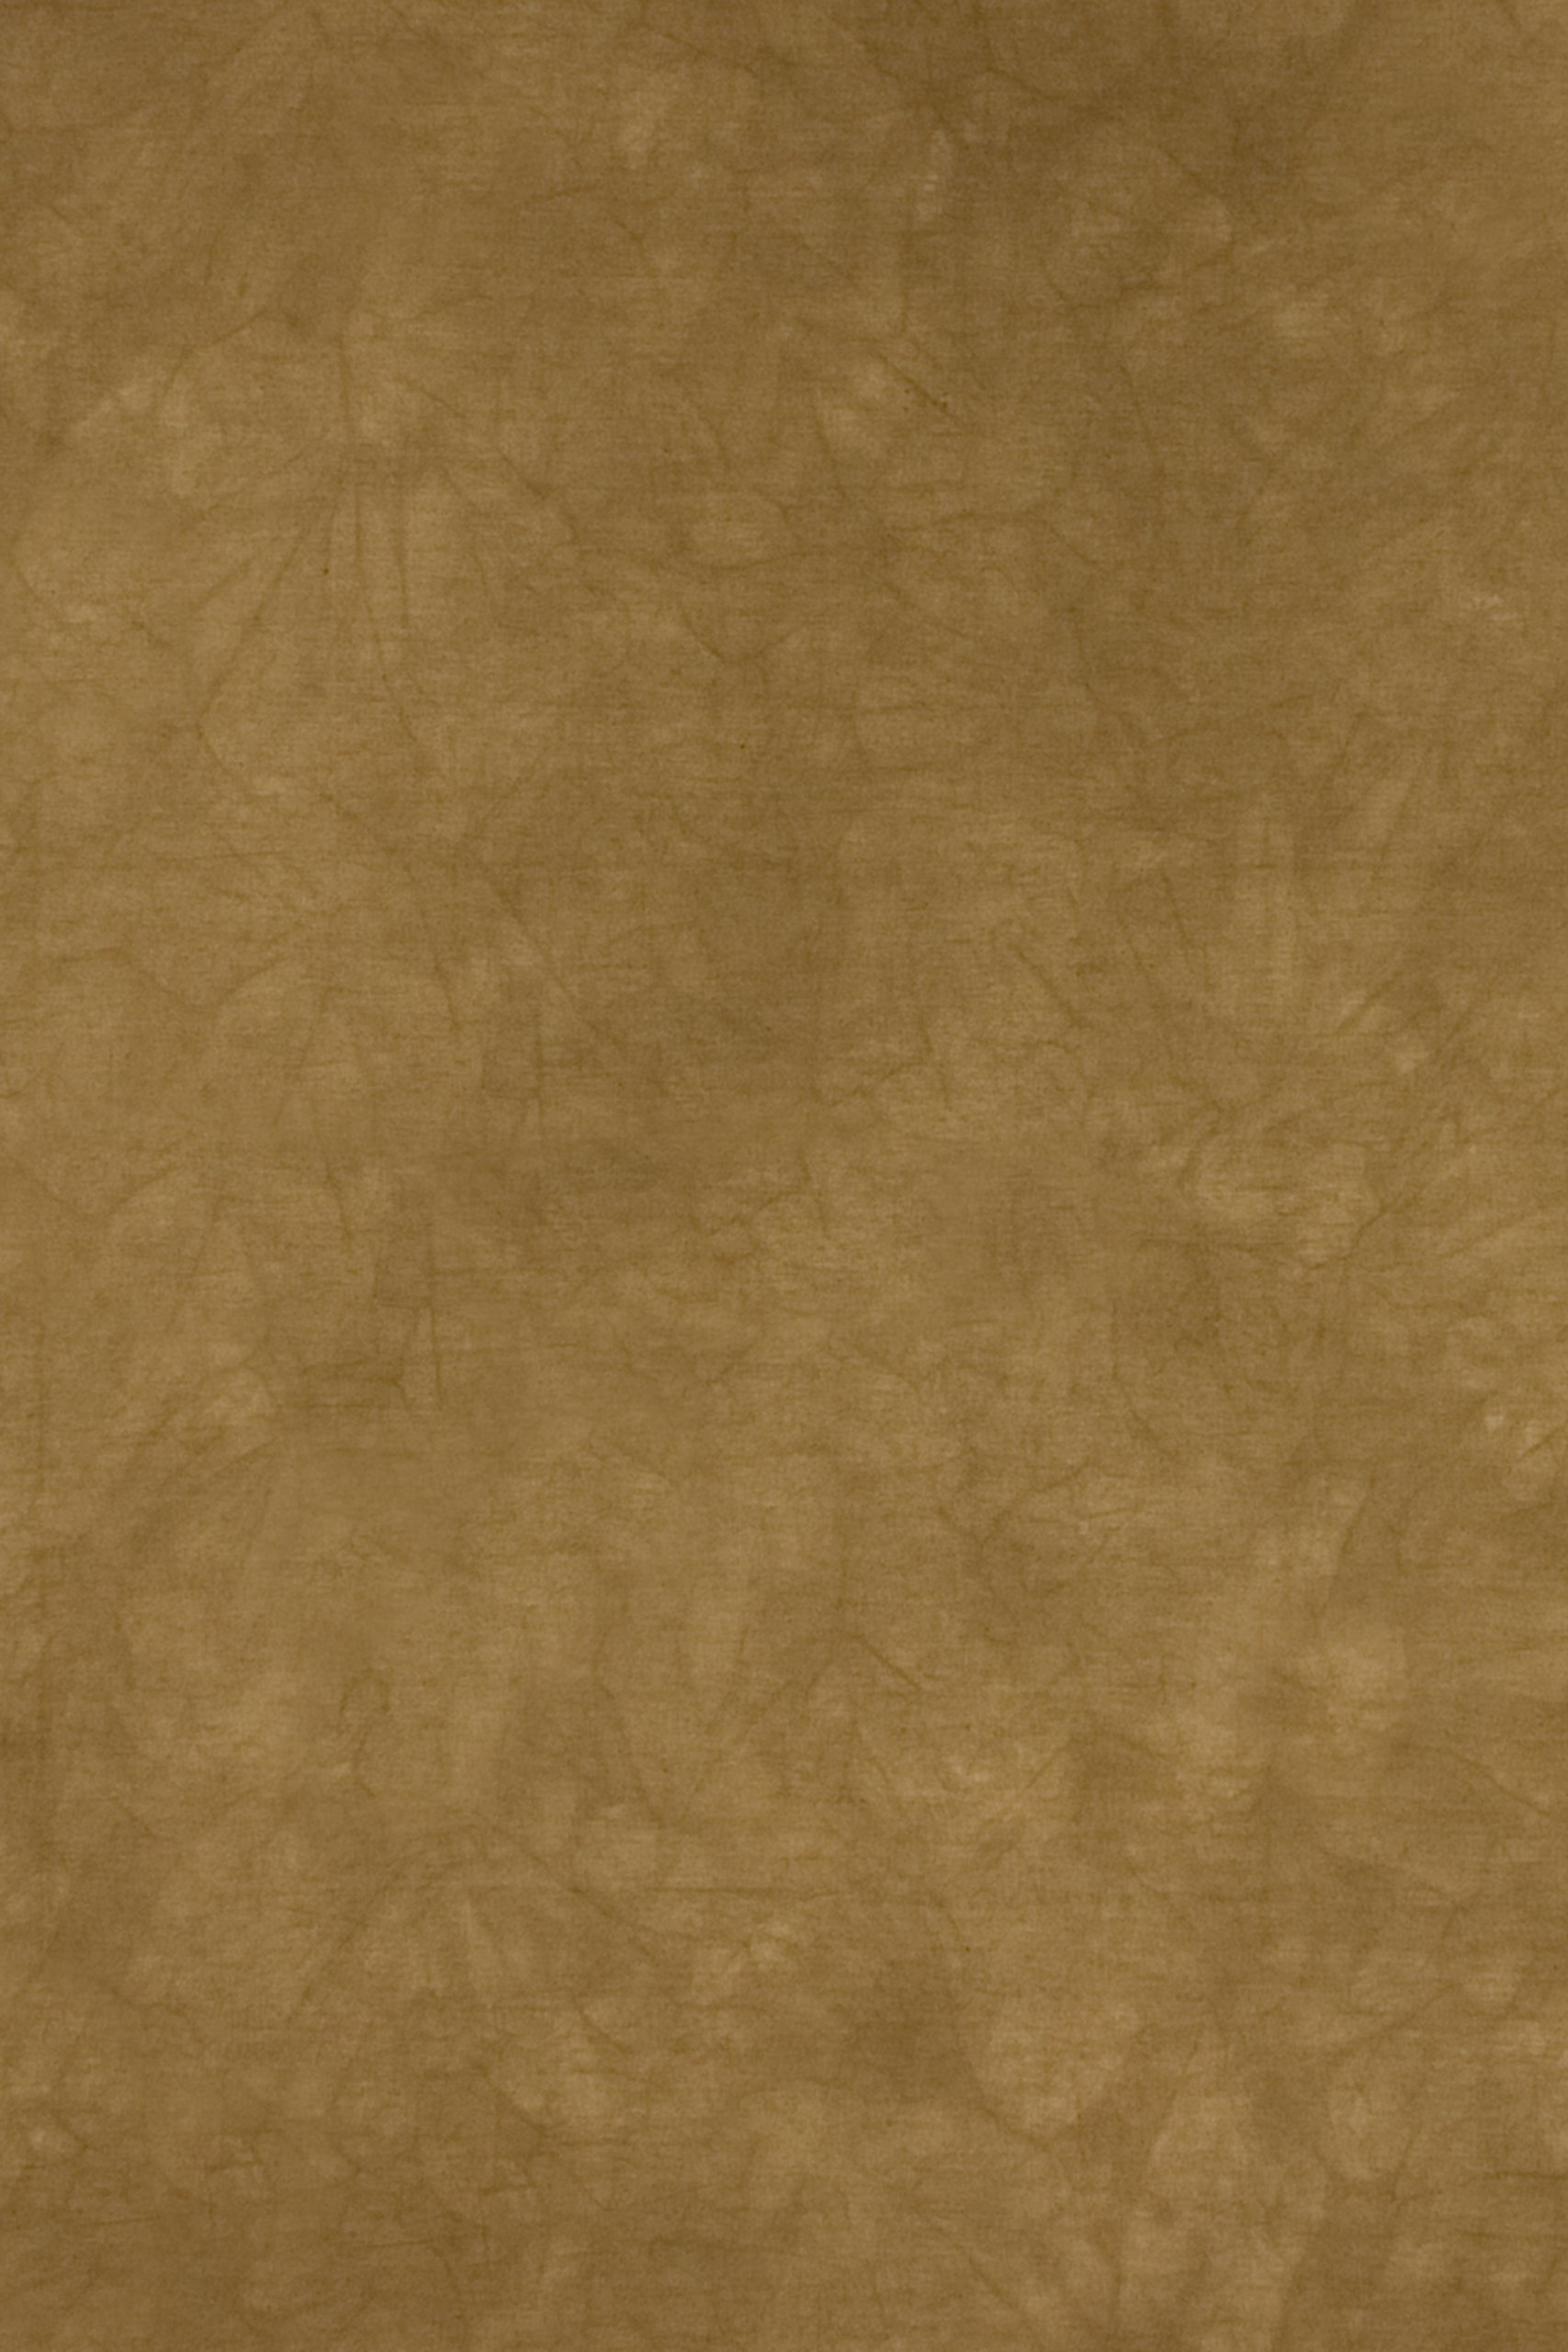 Backdrop Alley Dusty Gold Crush Muslin Photo Background, 10' x 24'